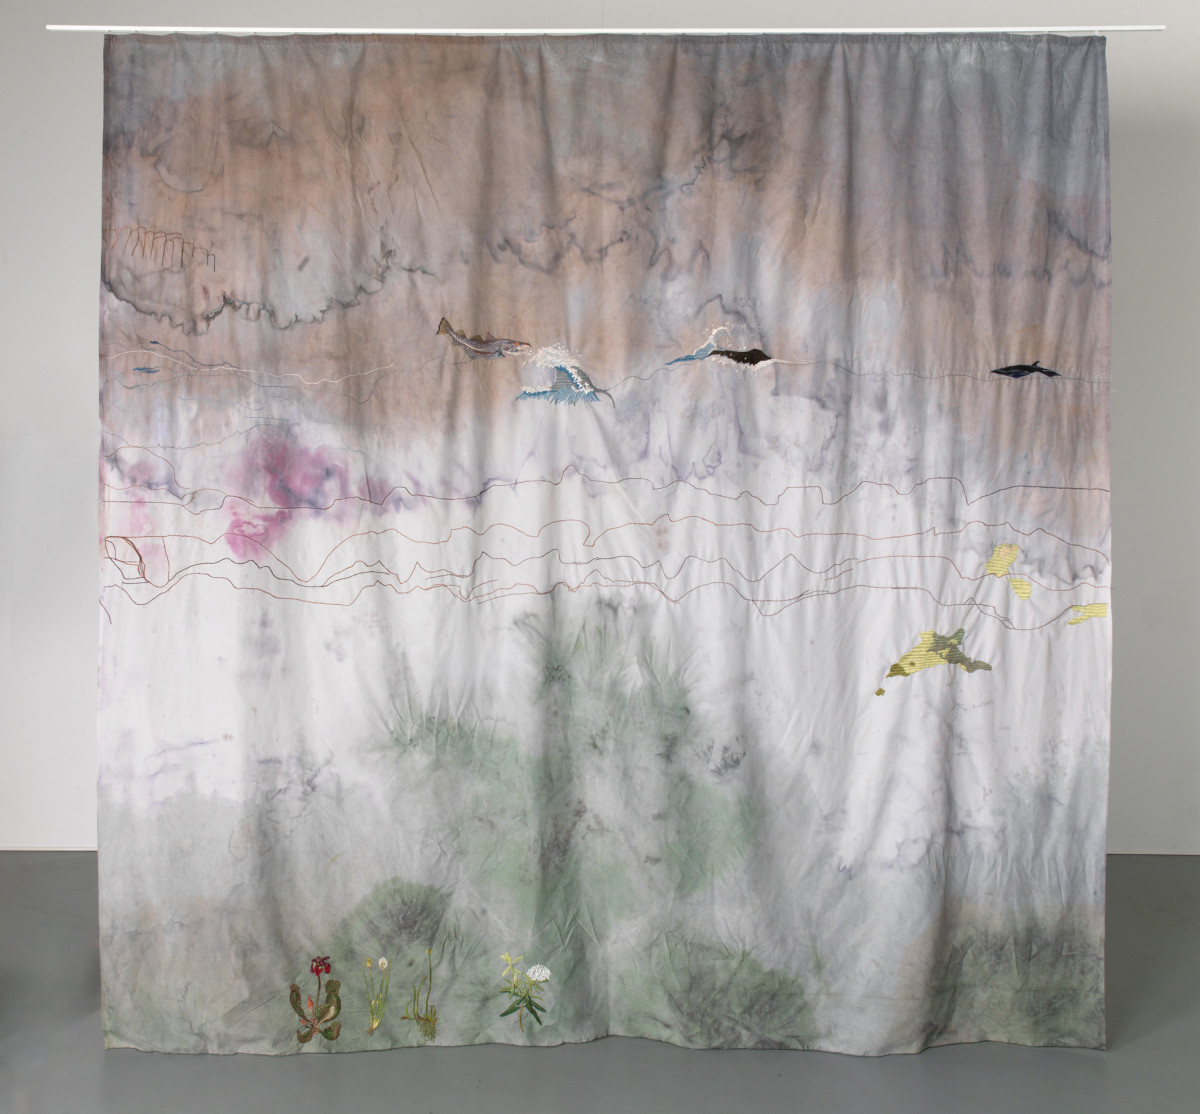 Isa Melsheimer Curtain (The Year Of the Whale), 2018 Fabric, thread 290 x 300 cm